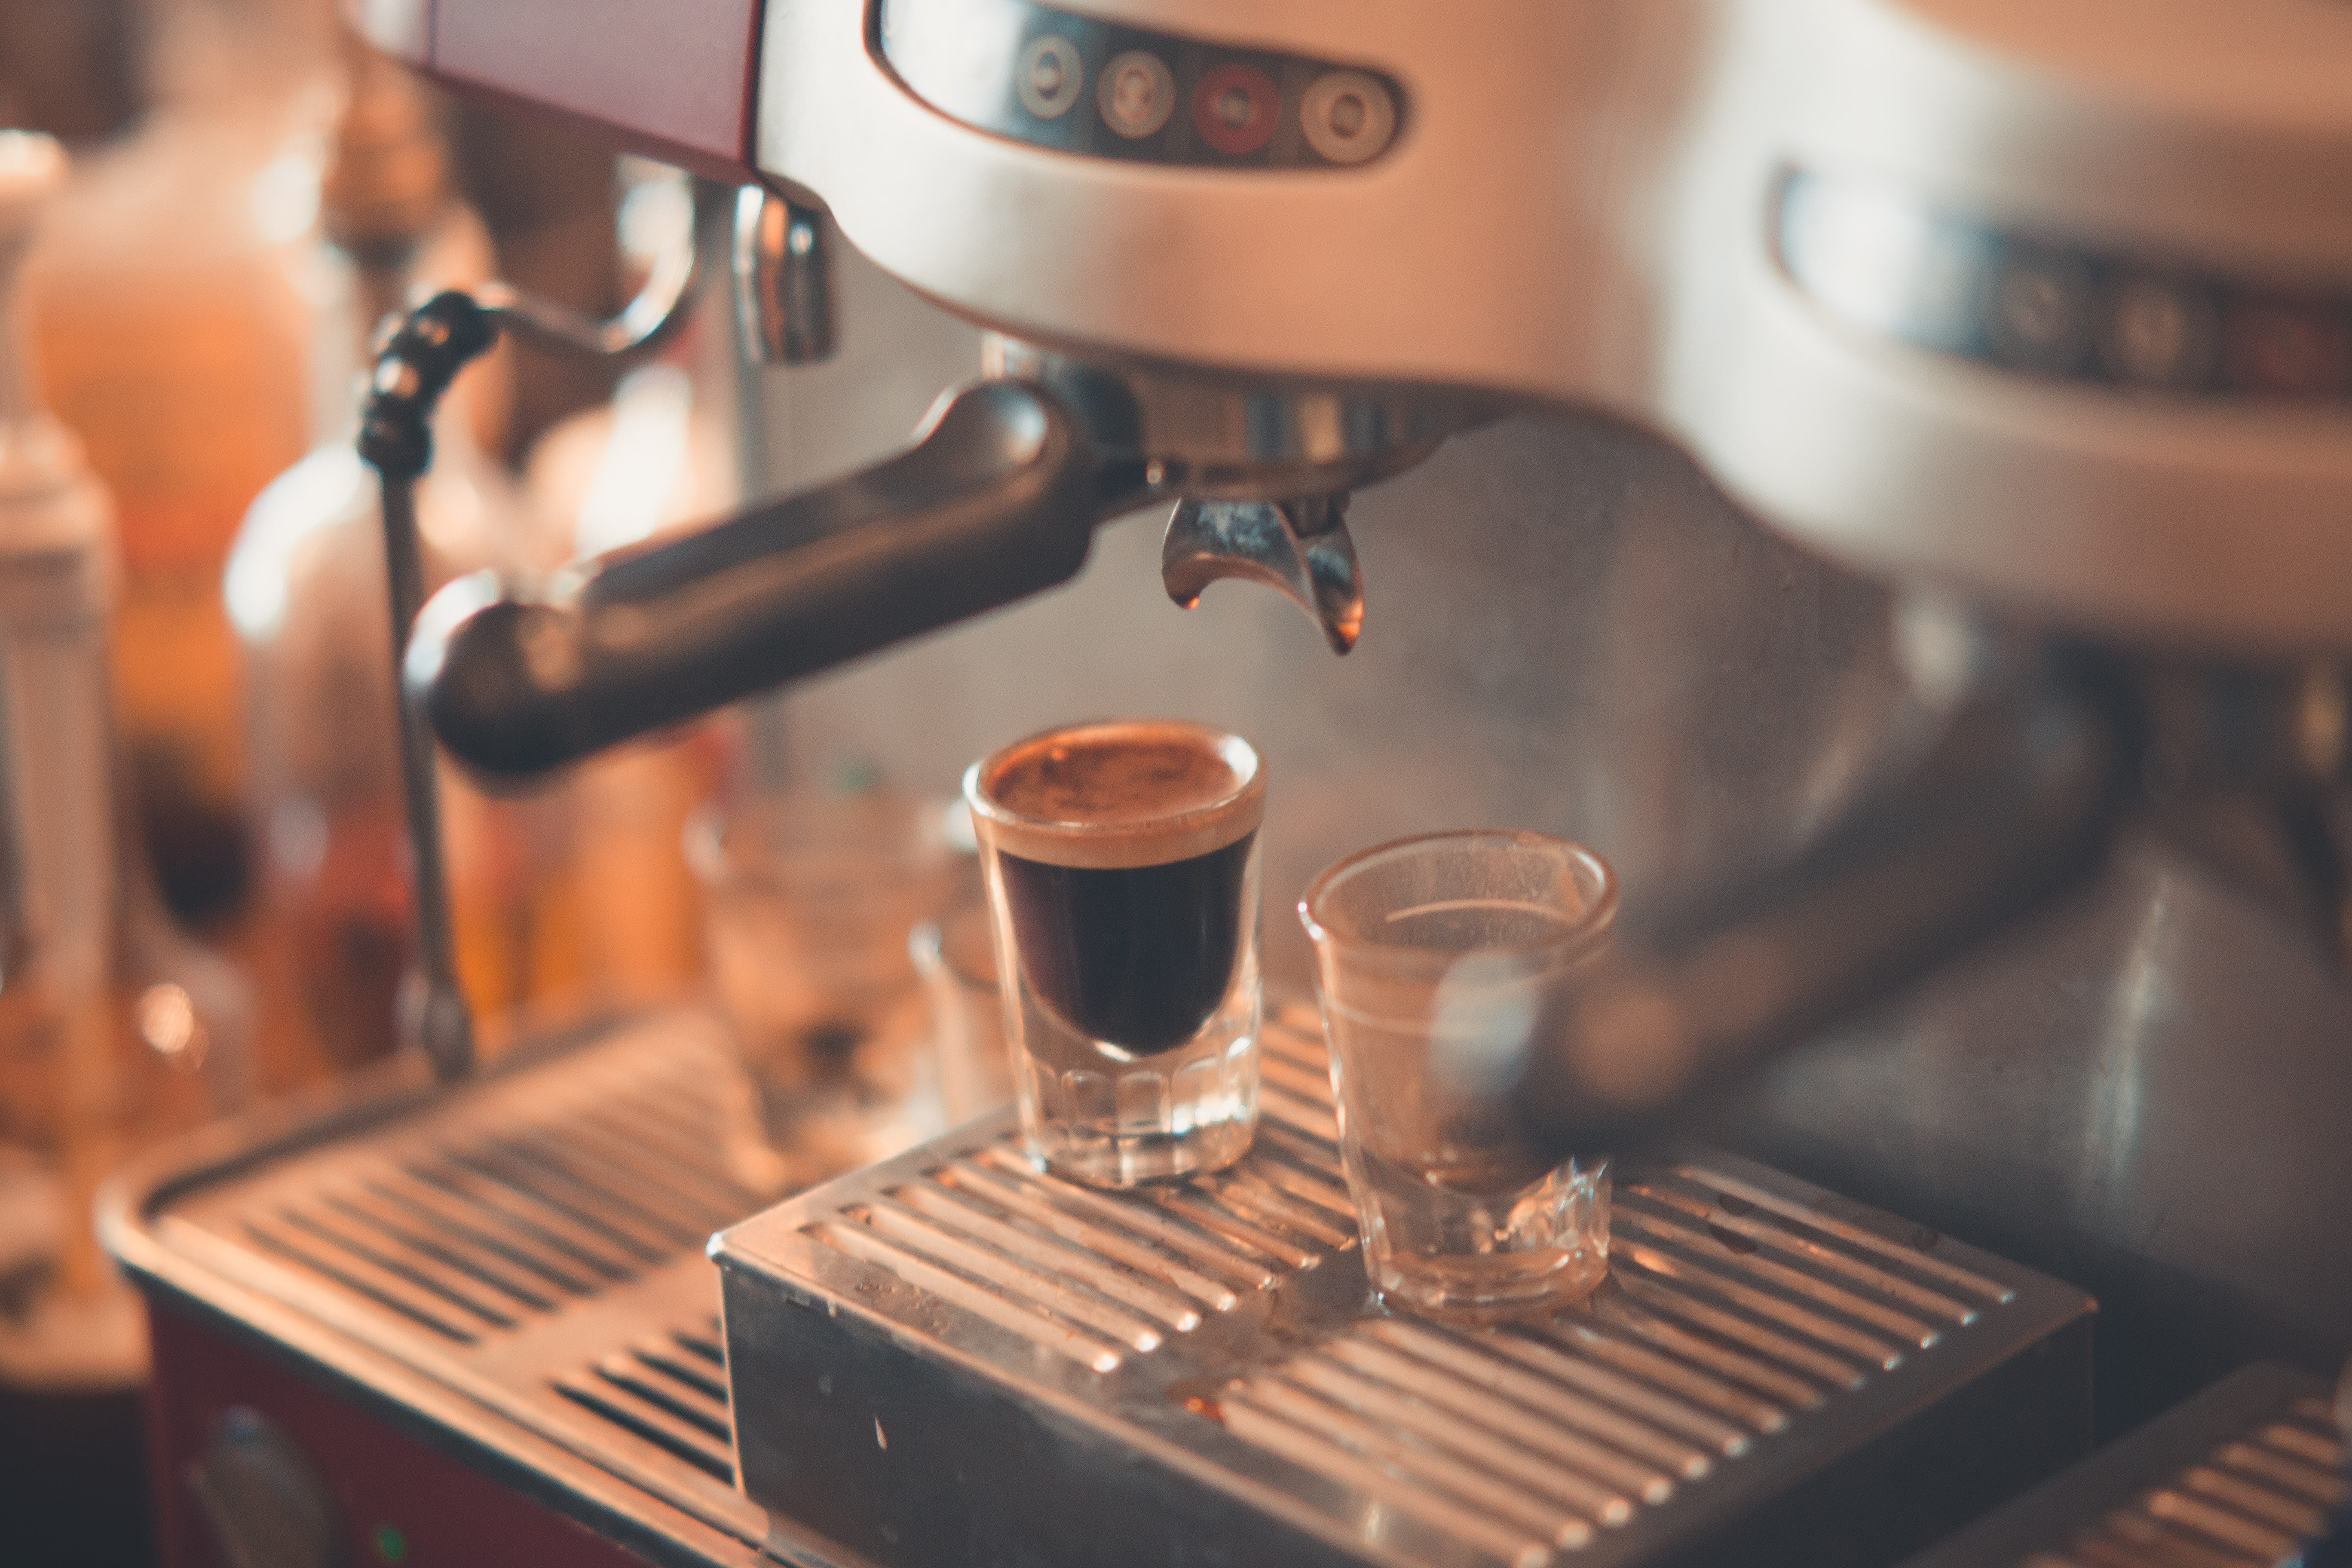 Filtered photograph of a large espresso machine with two shots under the spouts, one full of espresso and one empty